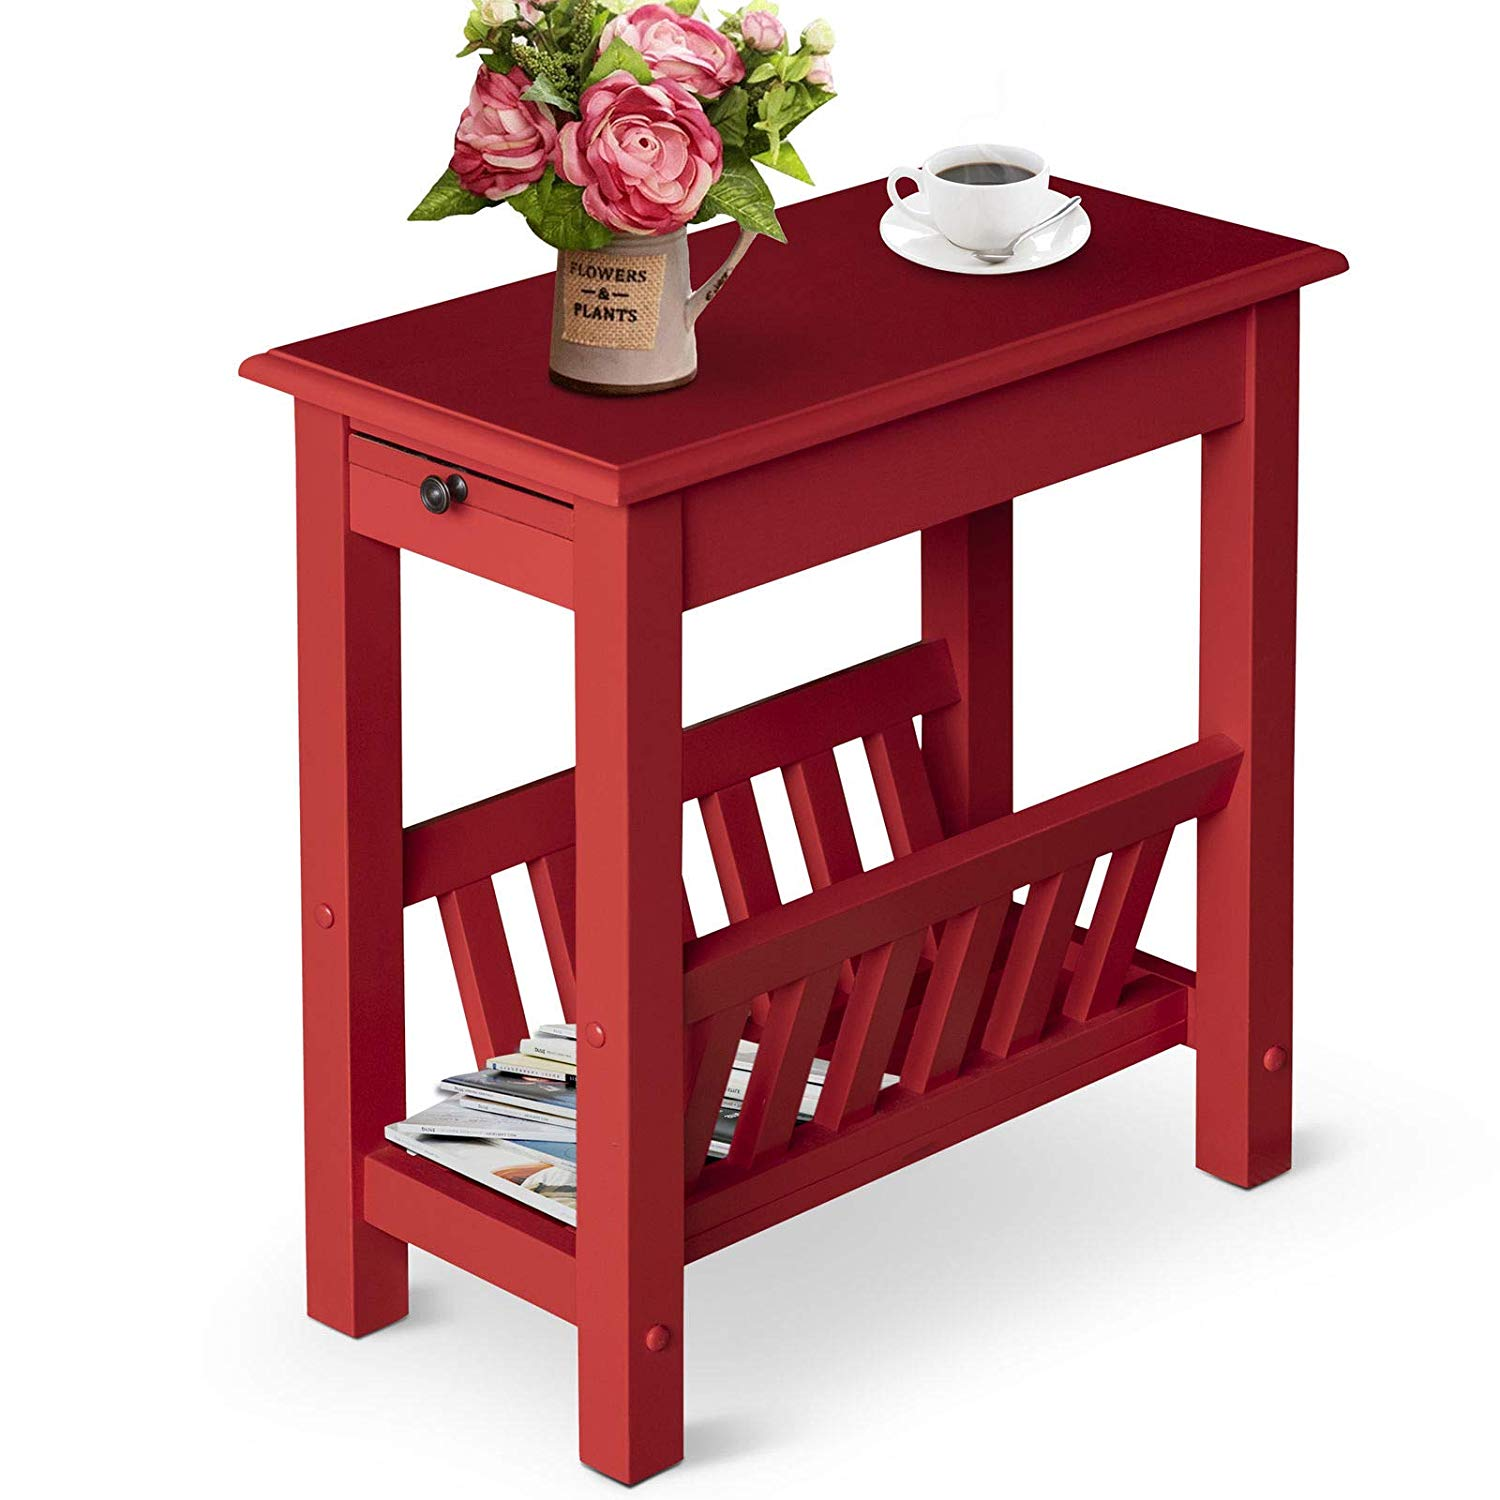 Modern Acacia Wood End Table Side Desk Living Room Organizer with Tray 2-Tier Red